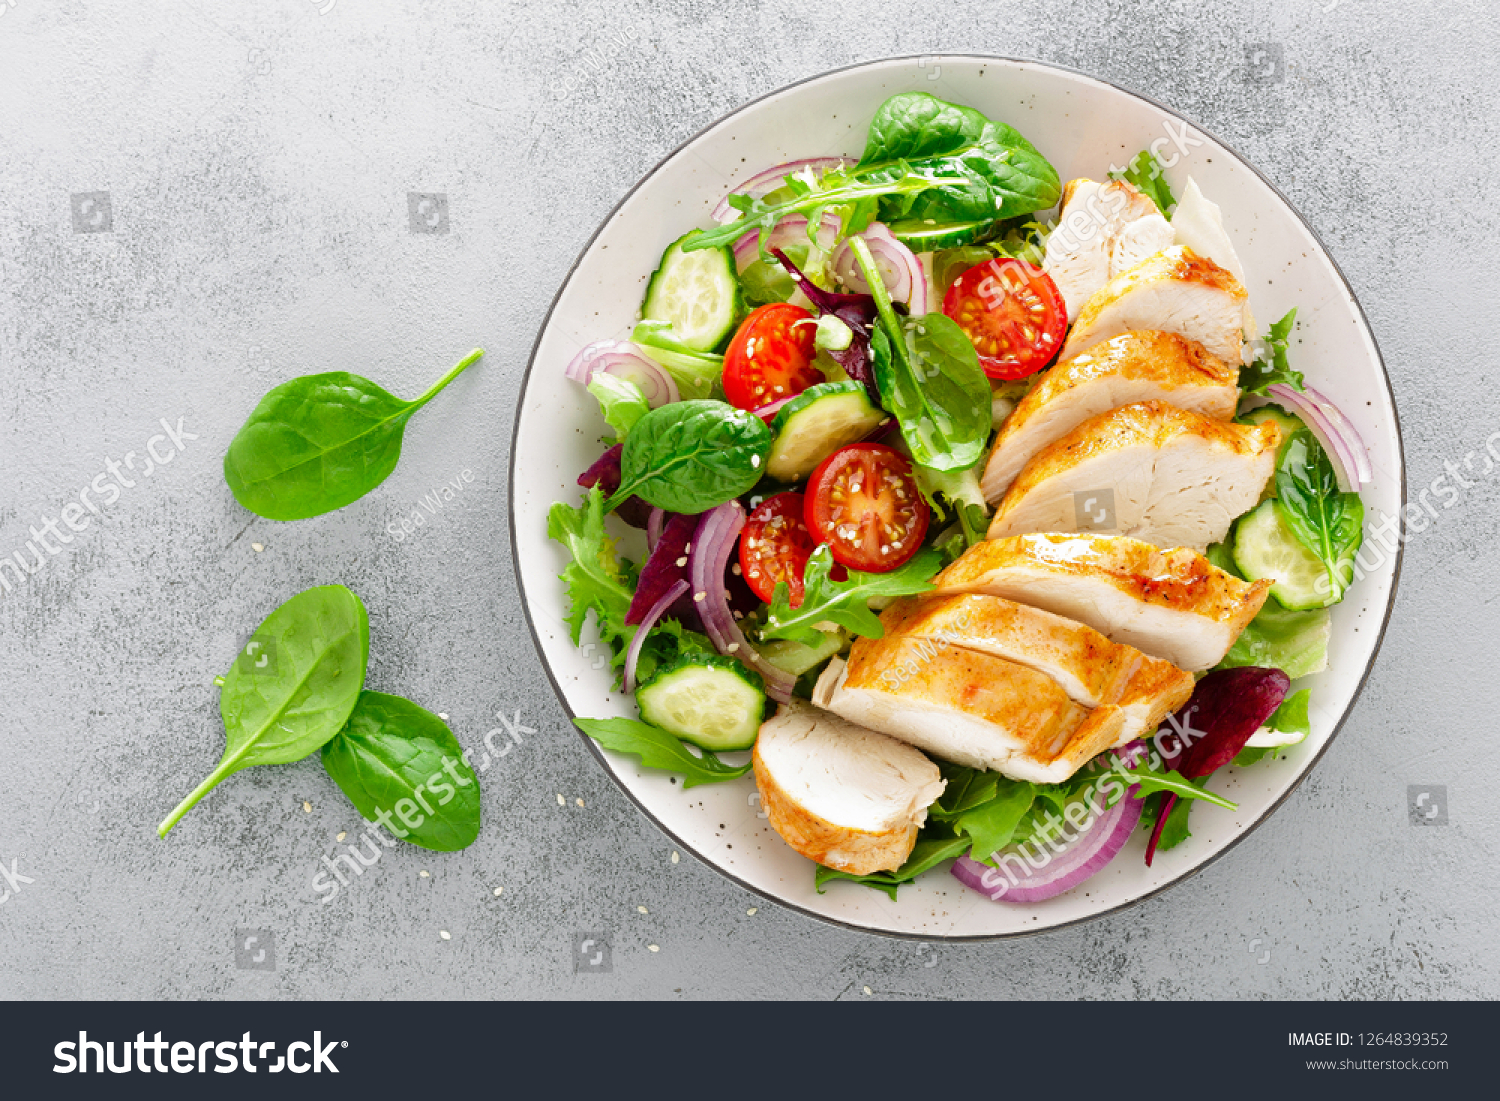 Grilled chicken breast, fillet and fresh vegetable salad of lettuce, arugula, spinach, cucumber and tomato. Healthy lunch menu. Diet food. Top view #1264839352